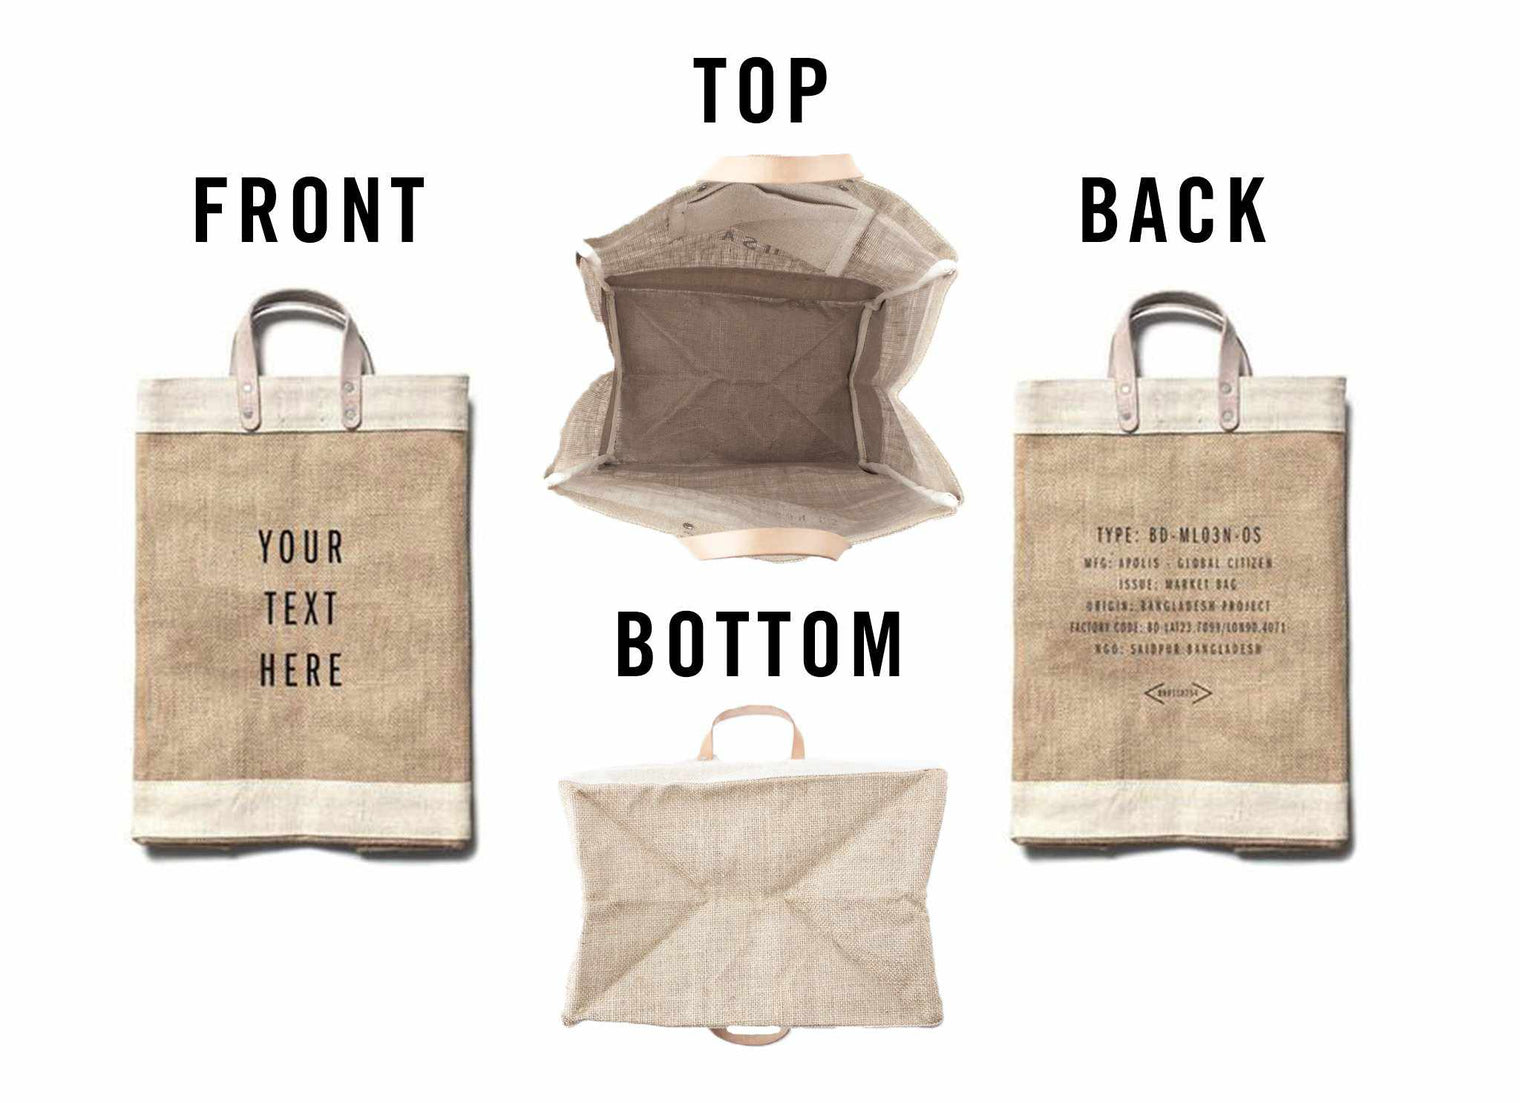 Customize Your Grocery Market Bag